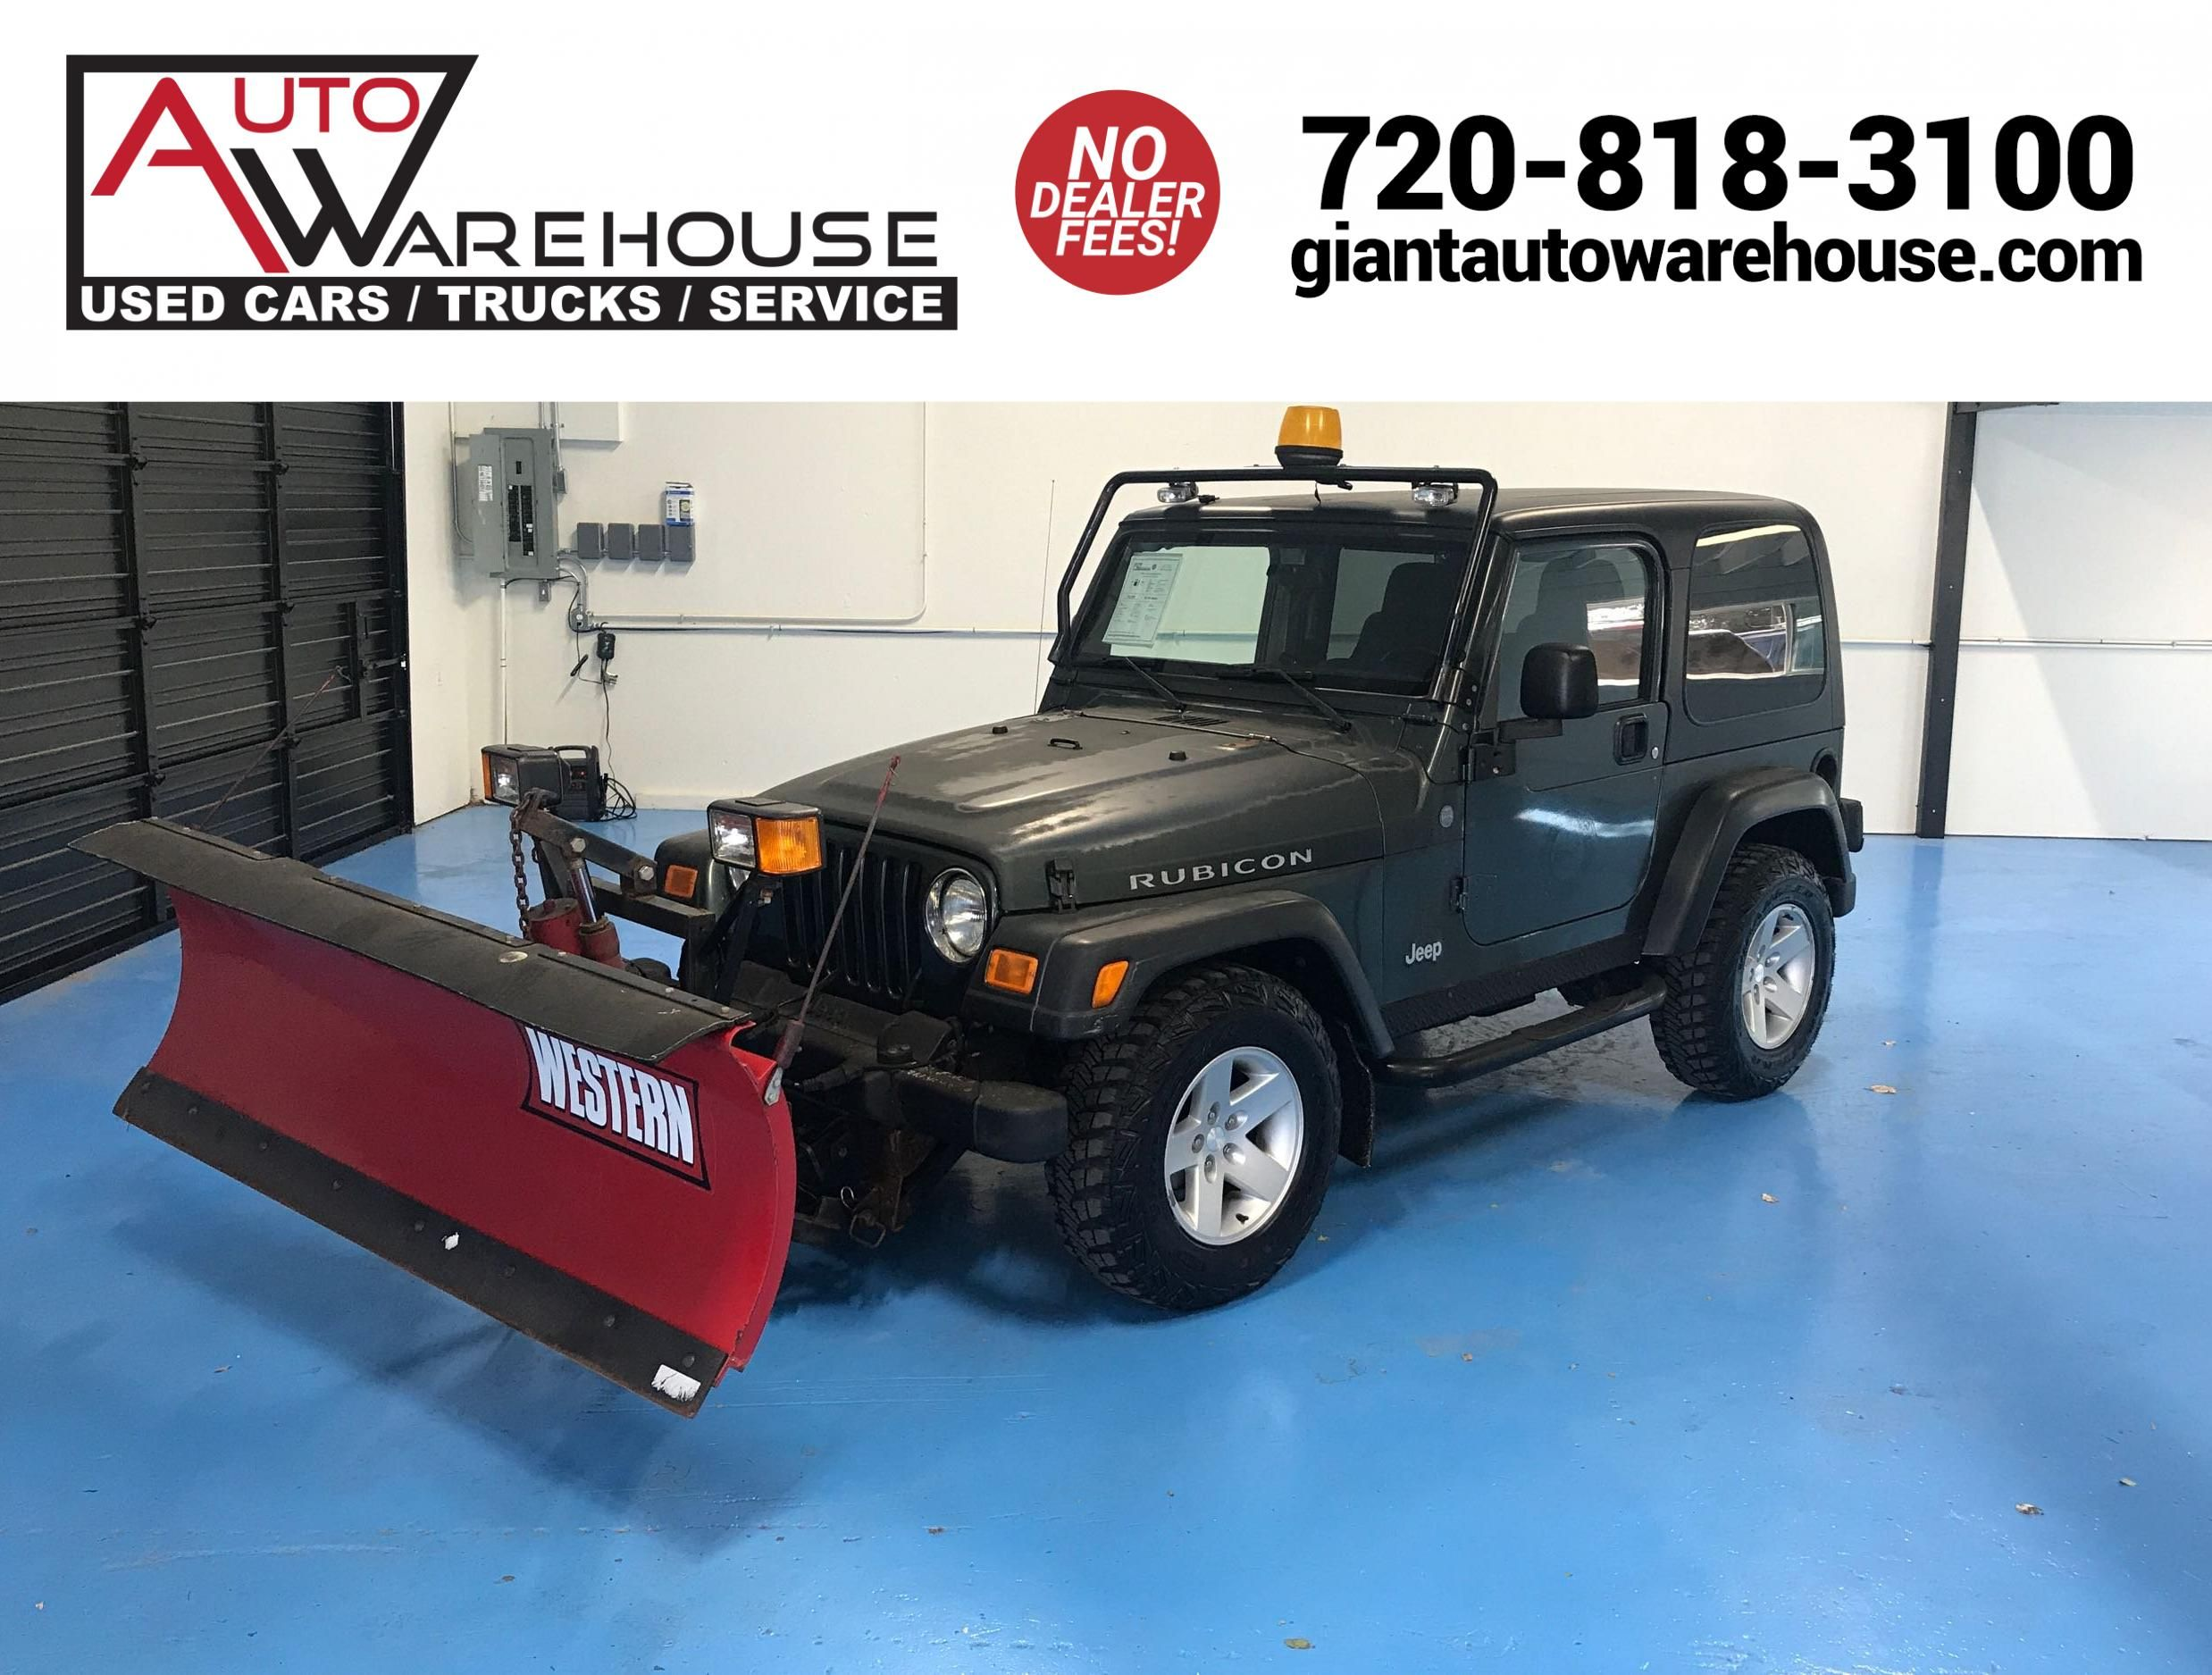 2004 Jeep Wrangler Rubicon. With Snow Plow!